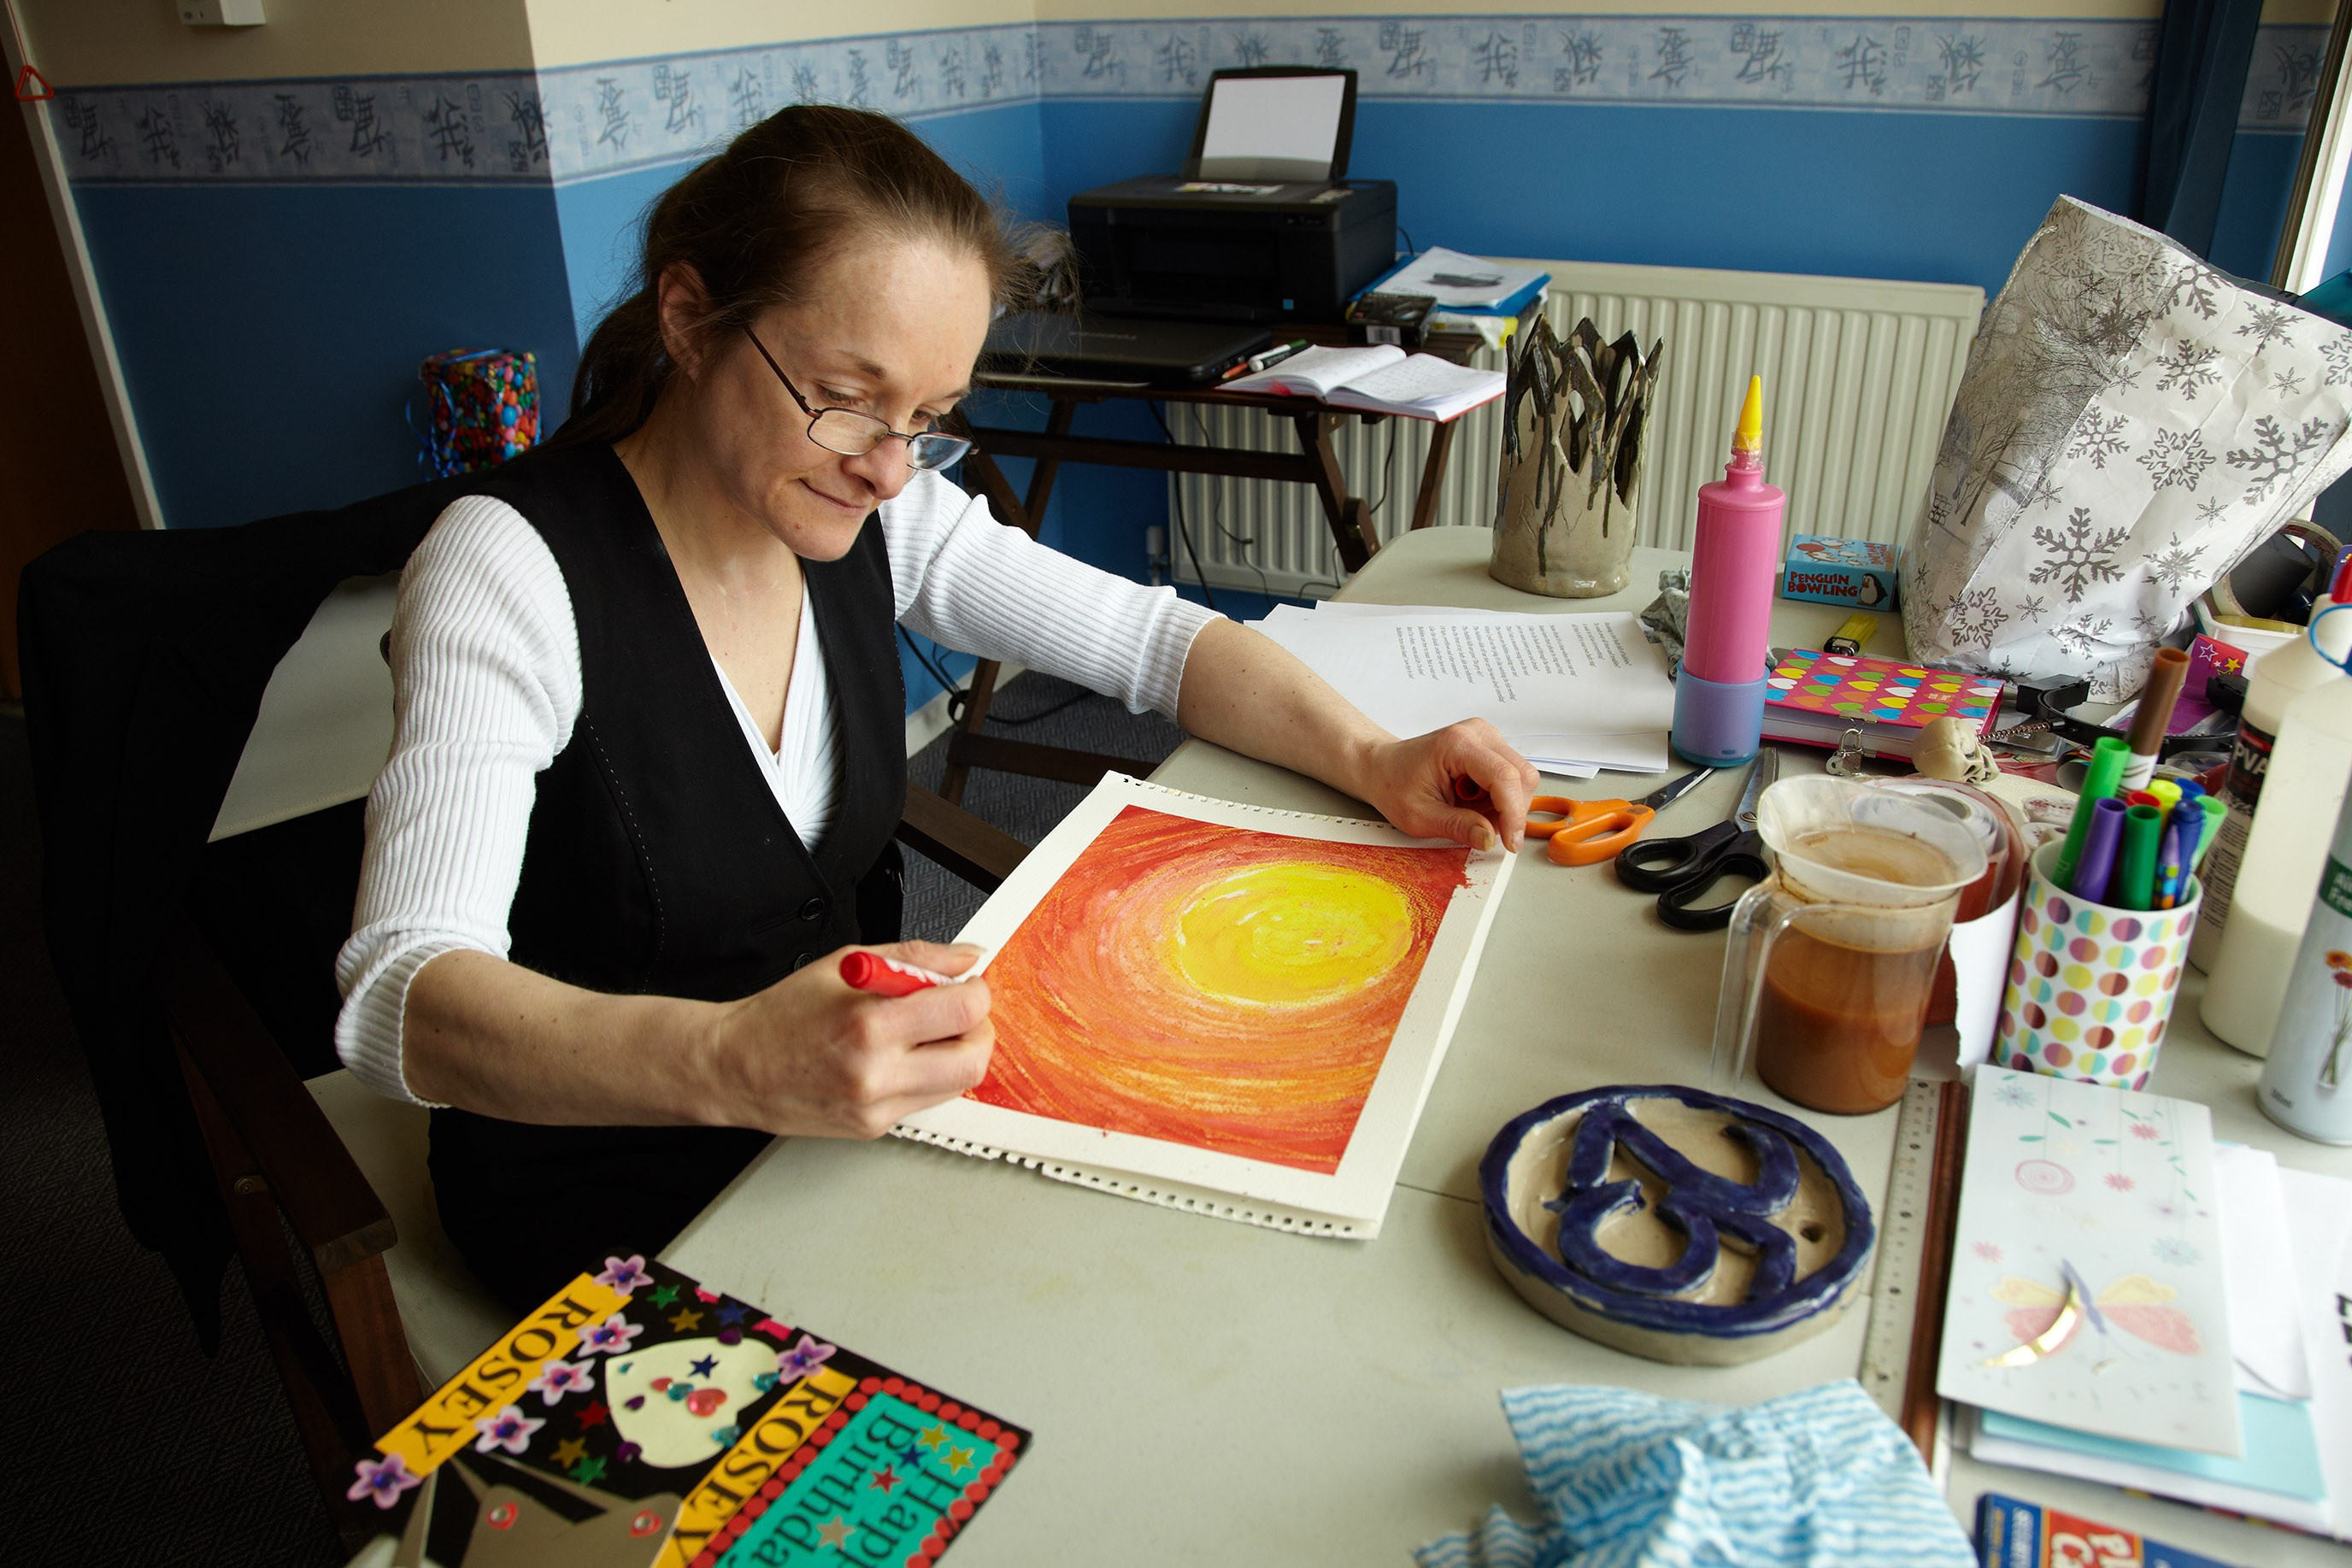 service user painting in her living quarters at Gregory Court